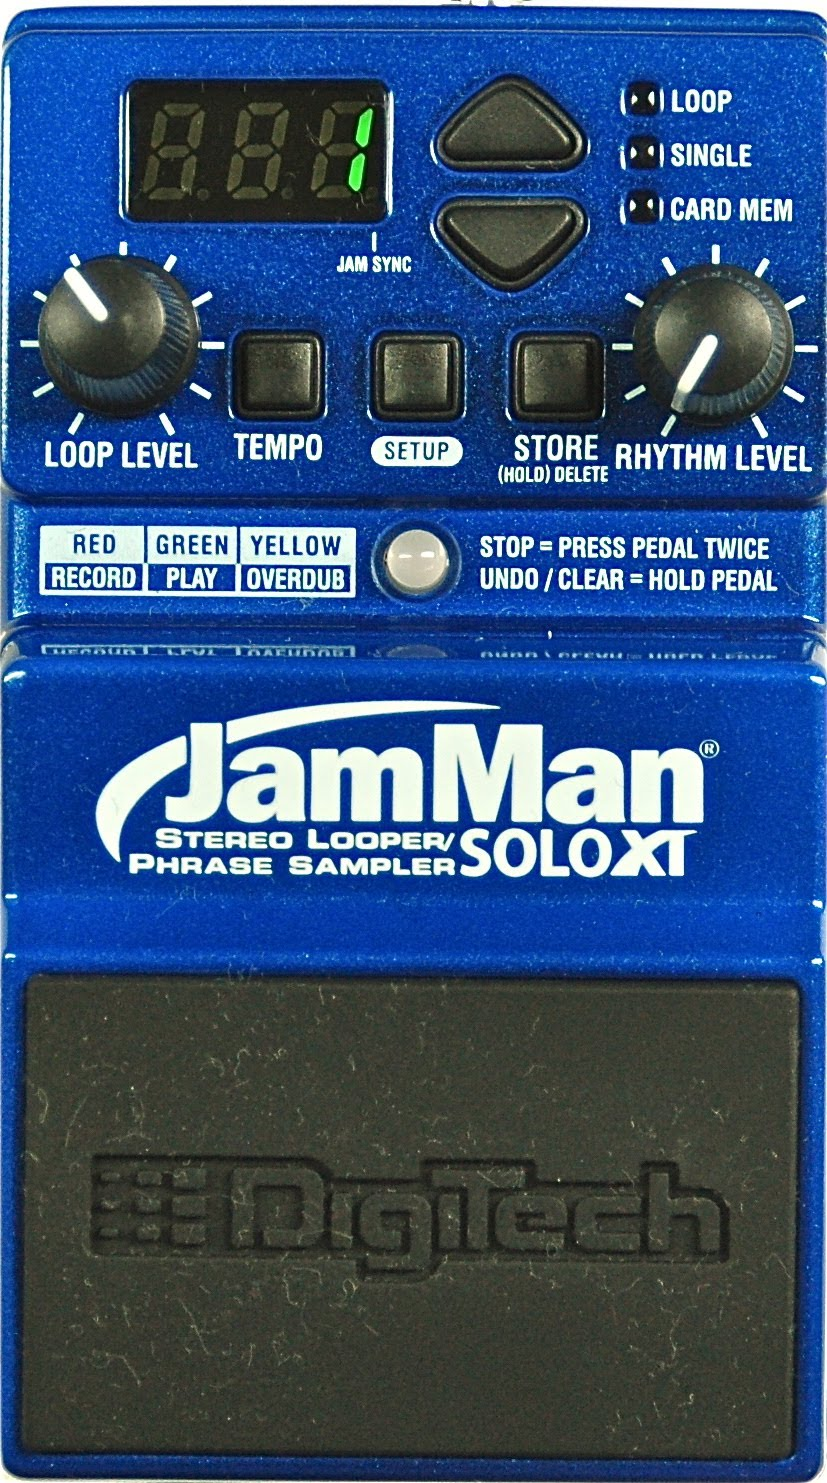 jamman solo xt manual pdf